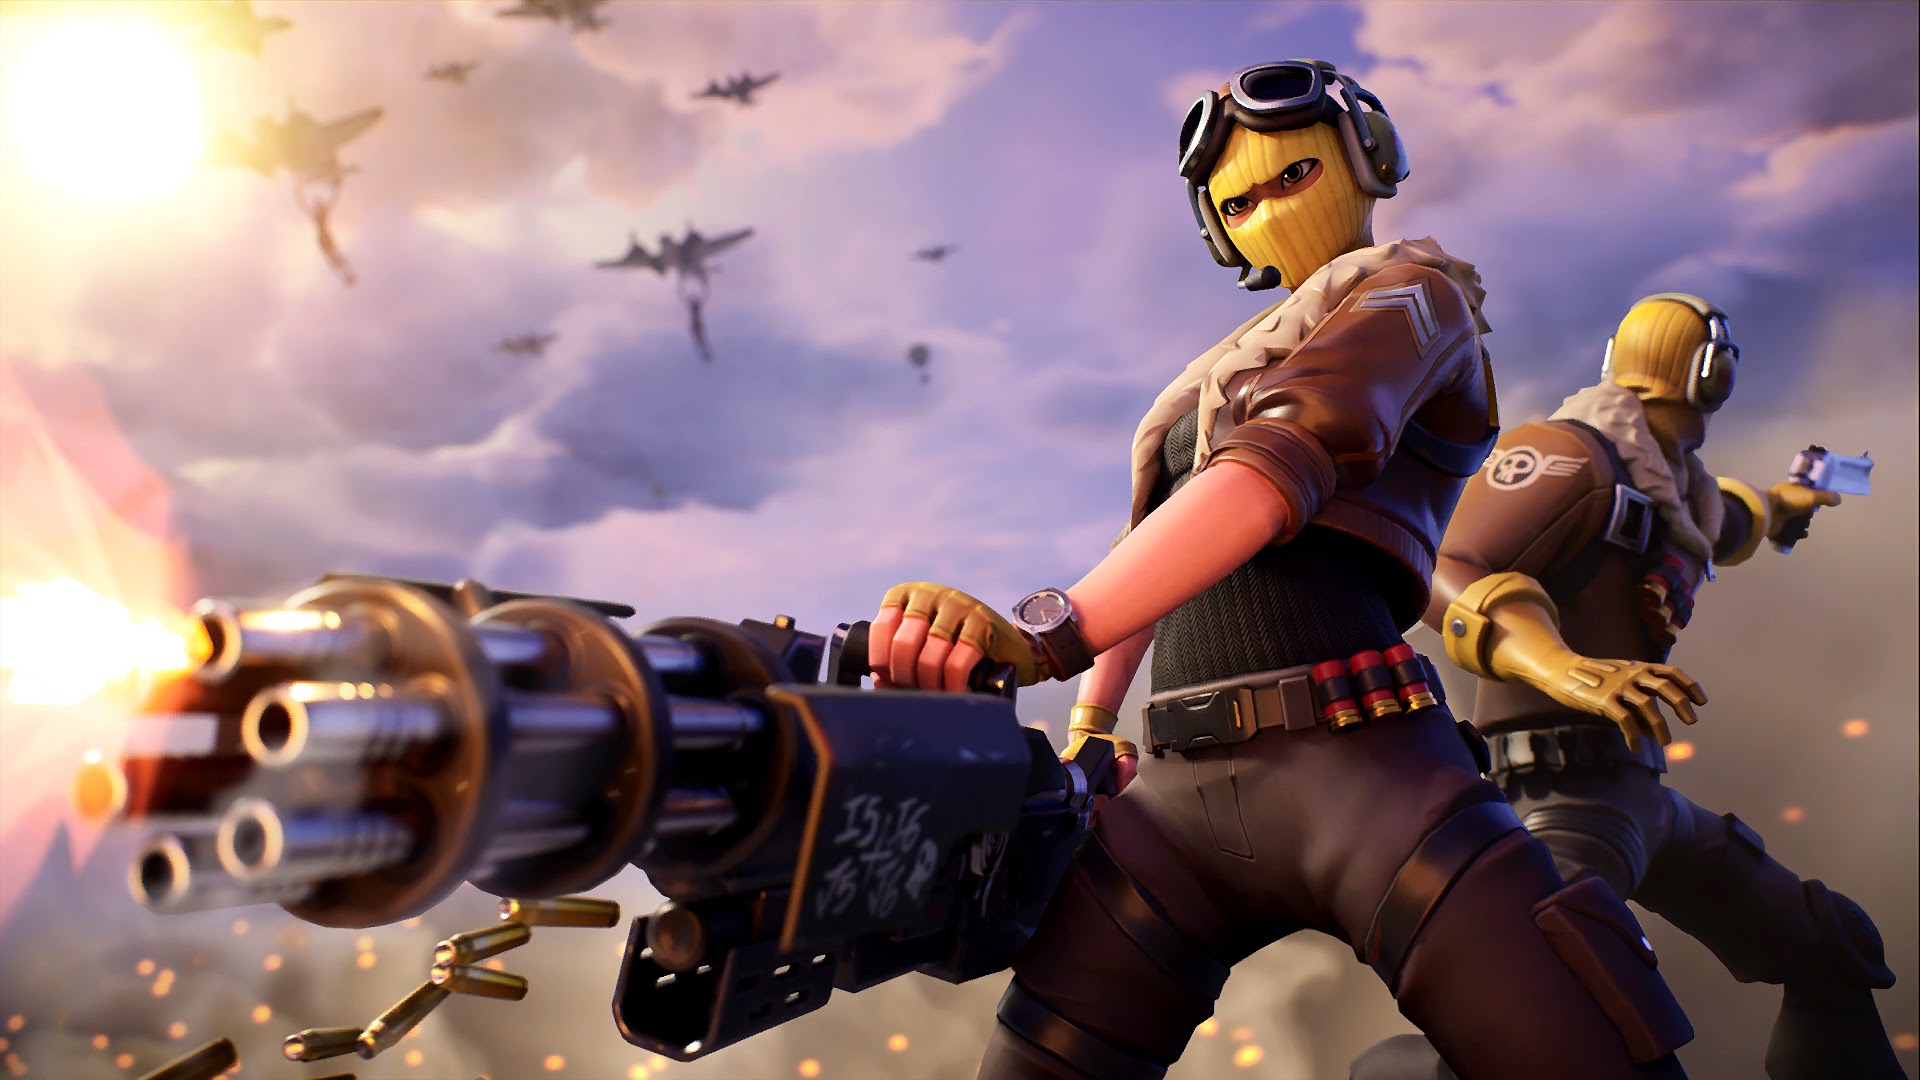 Velocity And Raptor Fortnite Skins How To Get Them